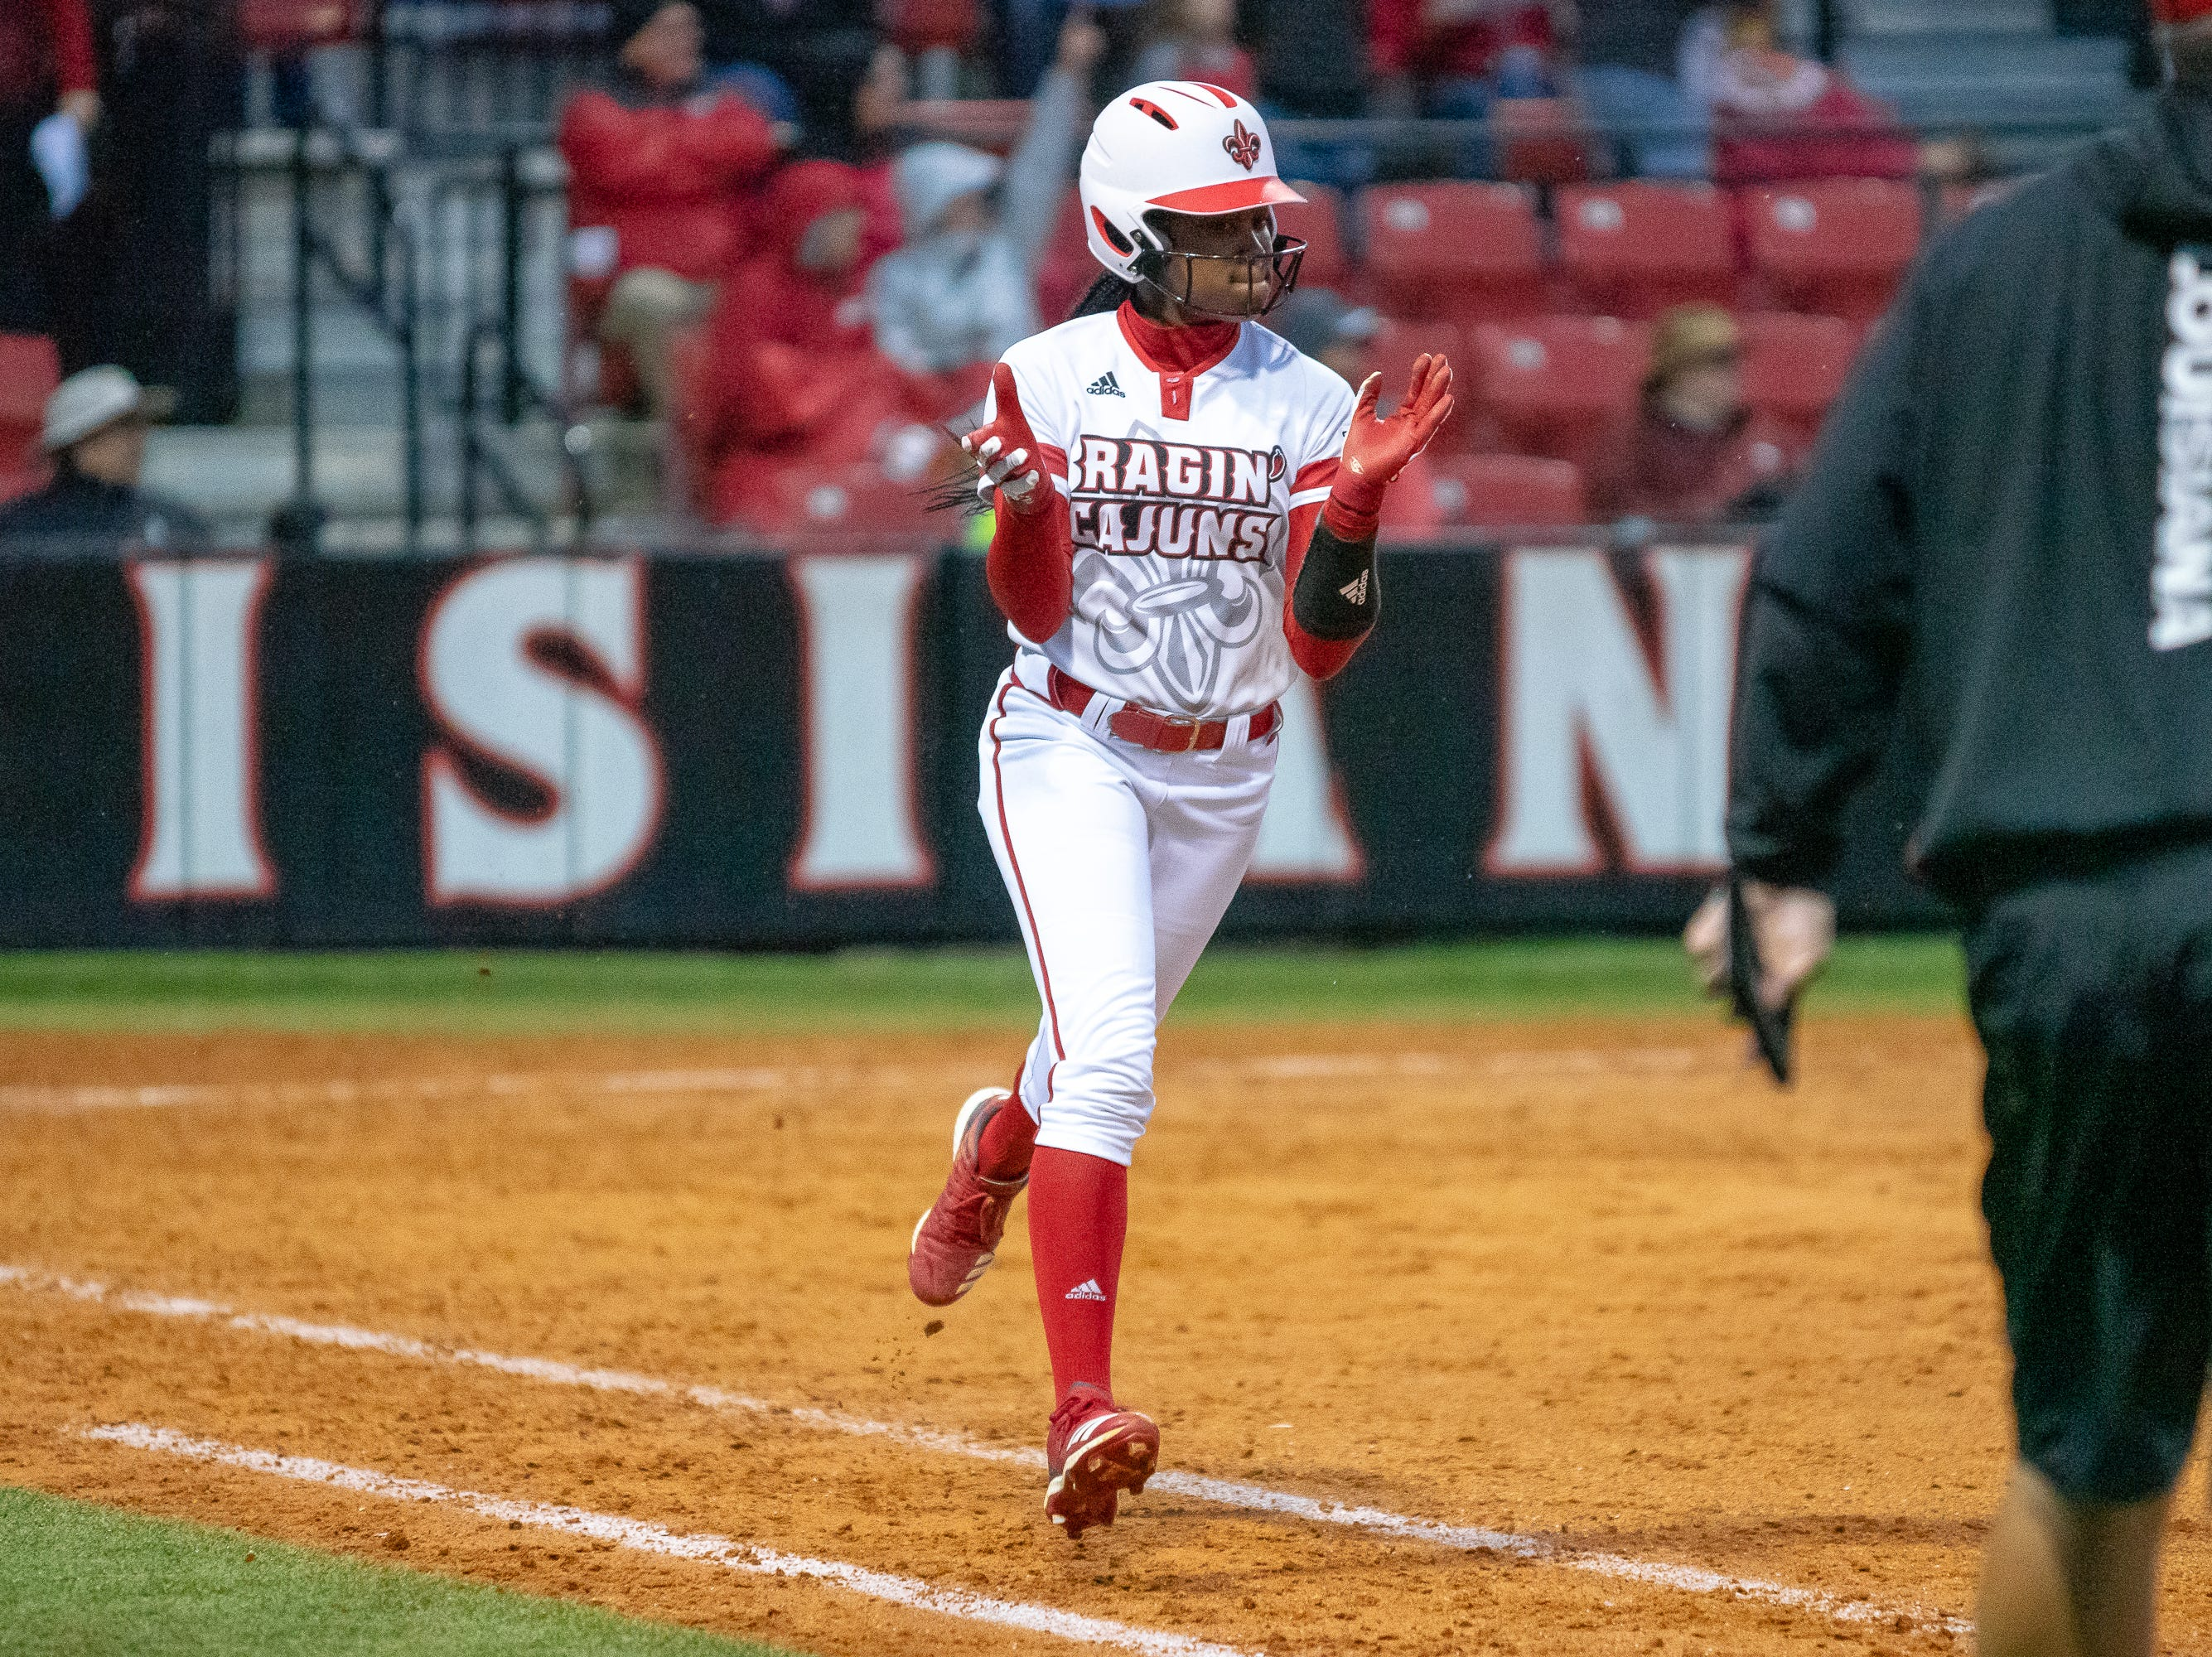 UL's Raina O'Neal celebrates her home run while jogging to first base as the Ragin' Cajuns take on the Troy Trojans at Lamson Park, Yvette Girouard Field on Friday, March 15, 2019.